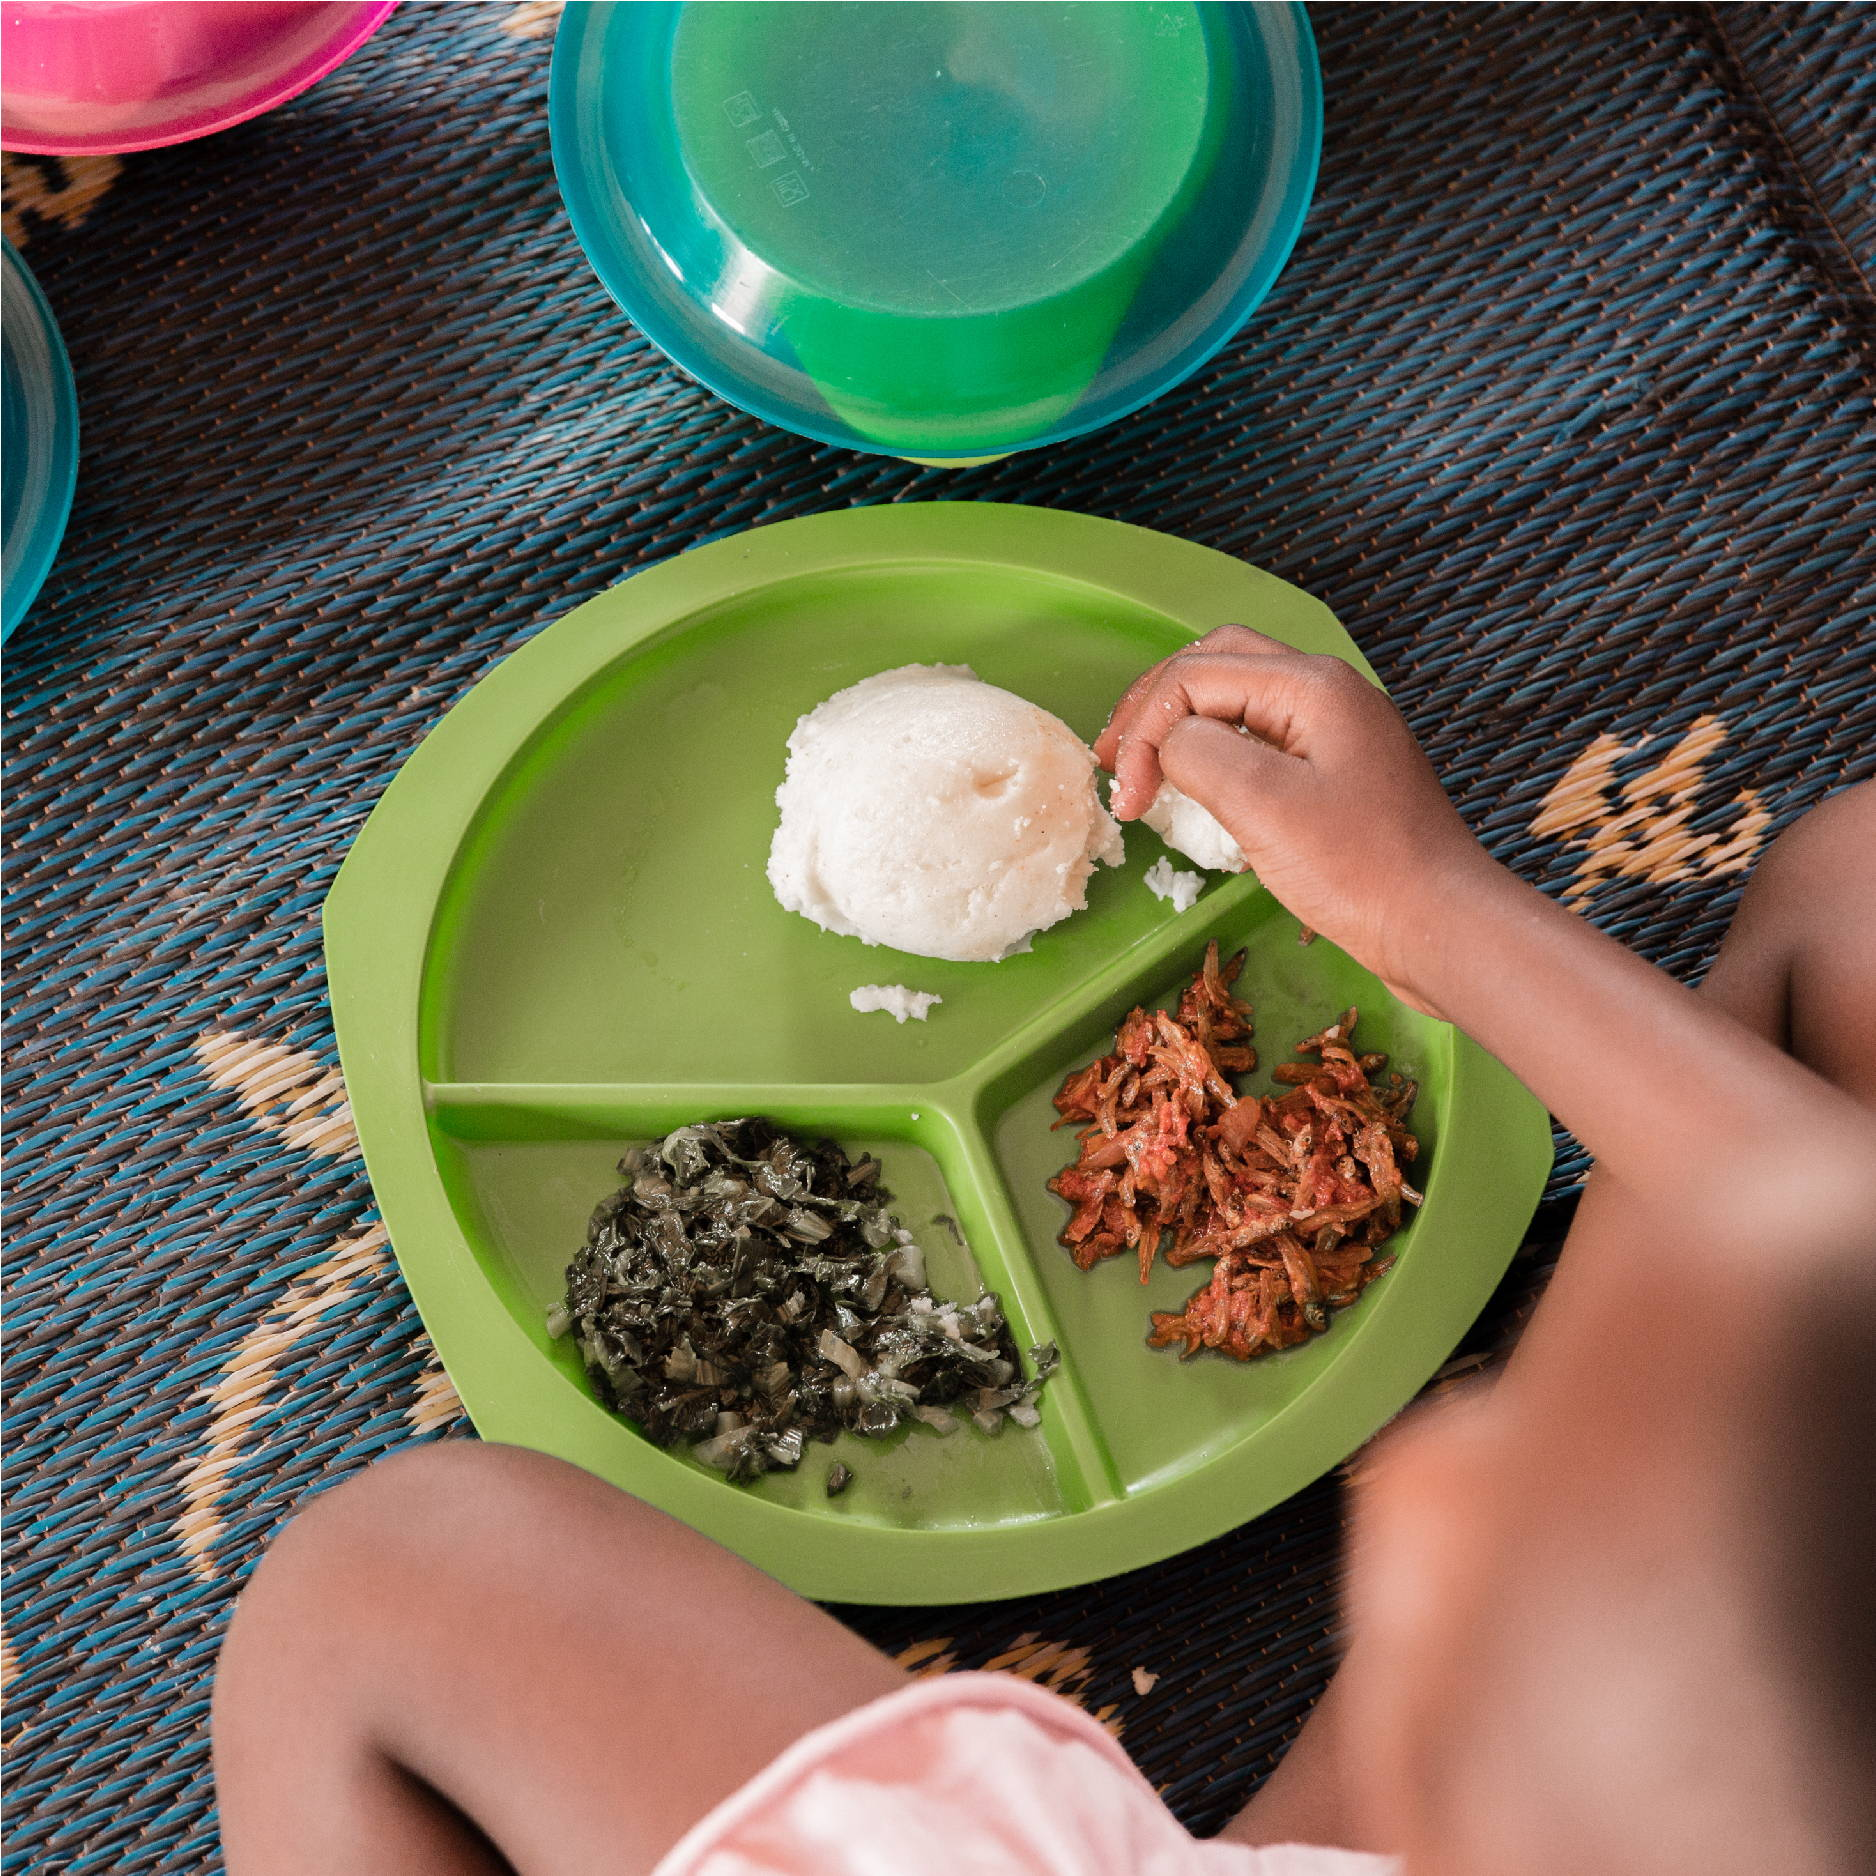 A girl is seen eating on a blue straw mat from a green plate. It is a traditional Zambian meal containing nshima